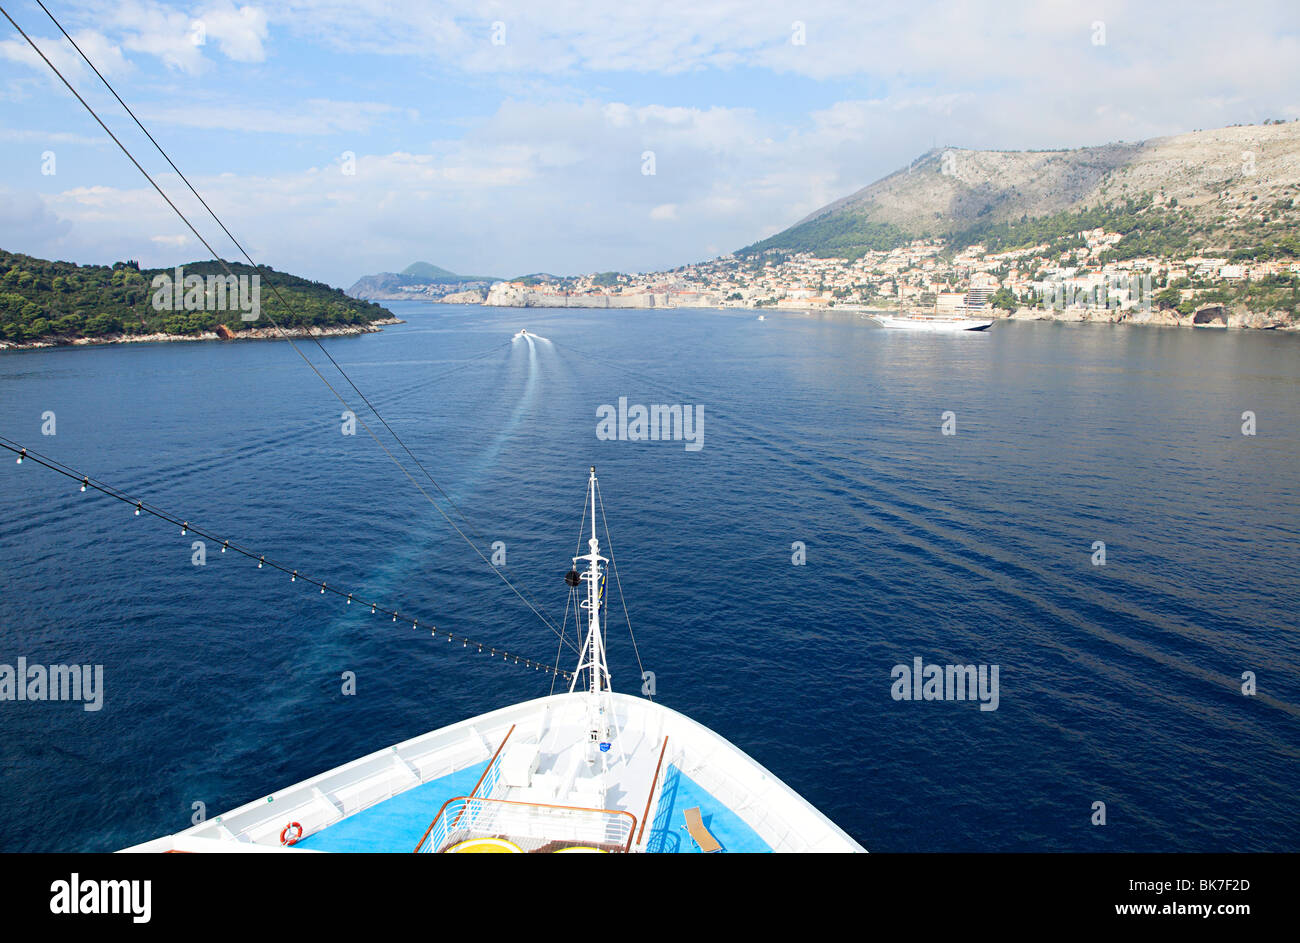 Ship approaching dubrovnik - Stock Image